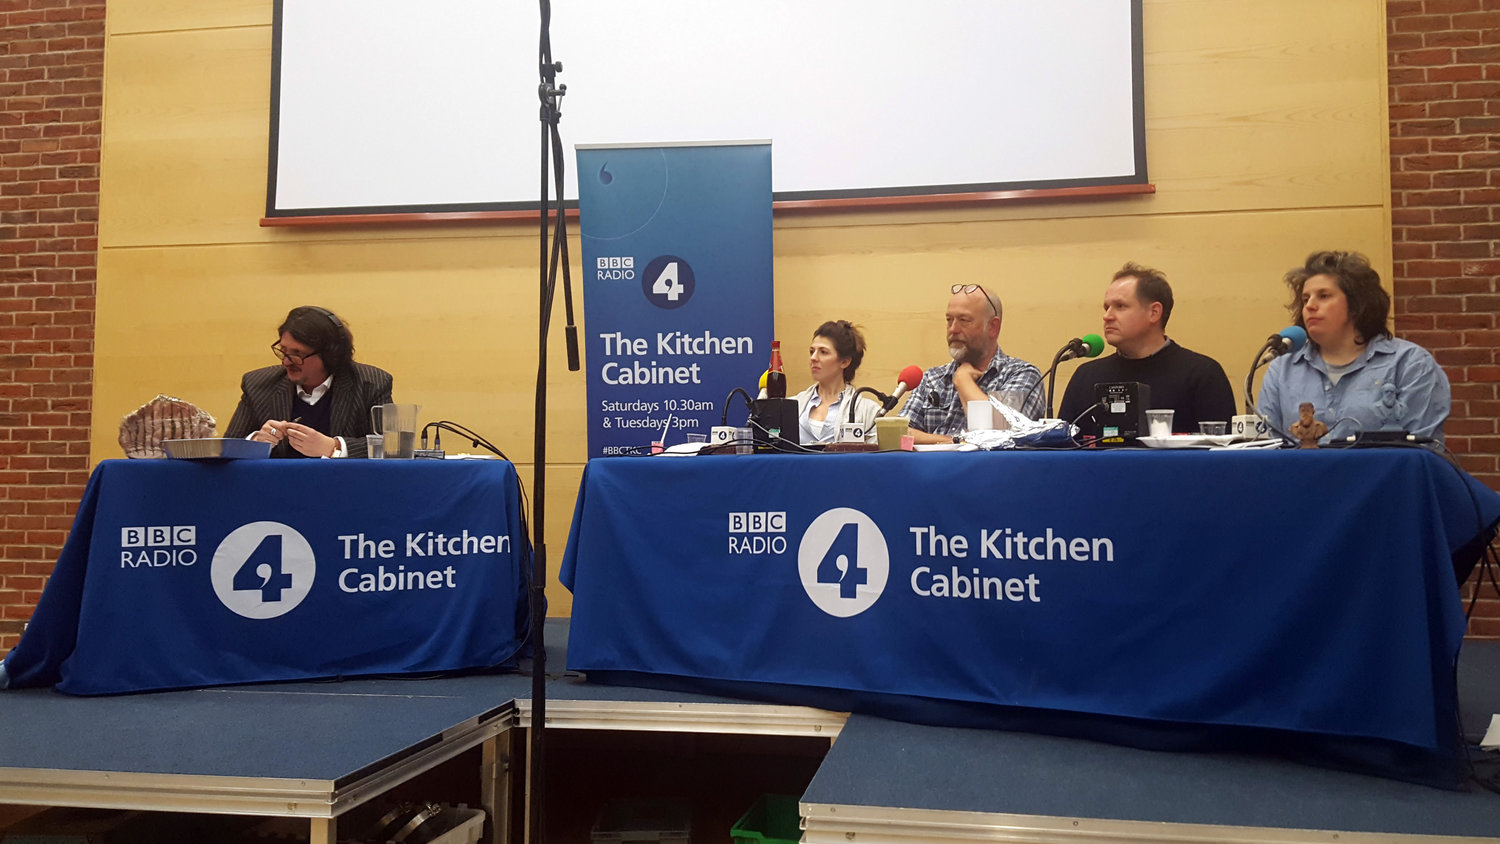 April Robotic Chef On Bbc Radio 4 Food Processing Robotics Automation Food Manufacturing Solutions From Oal